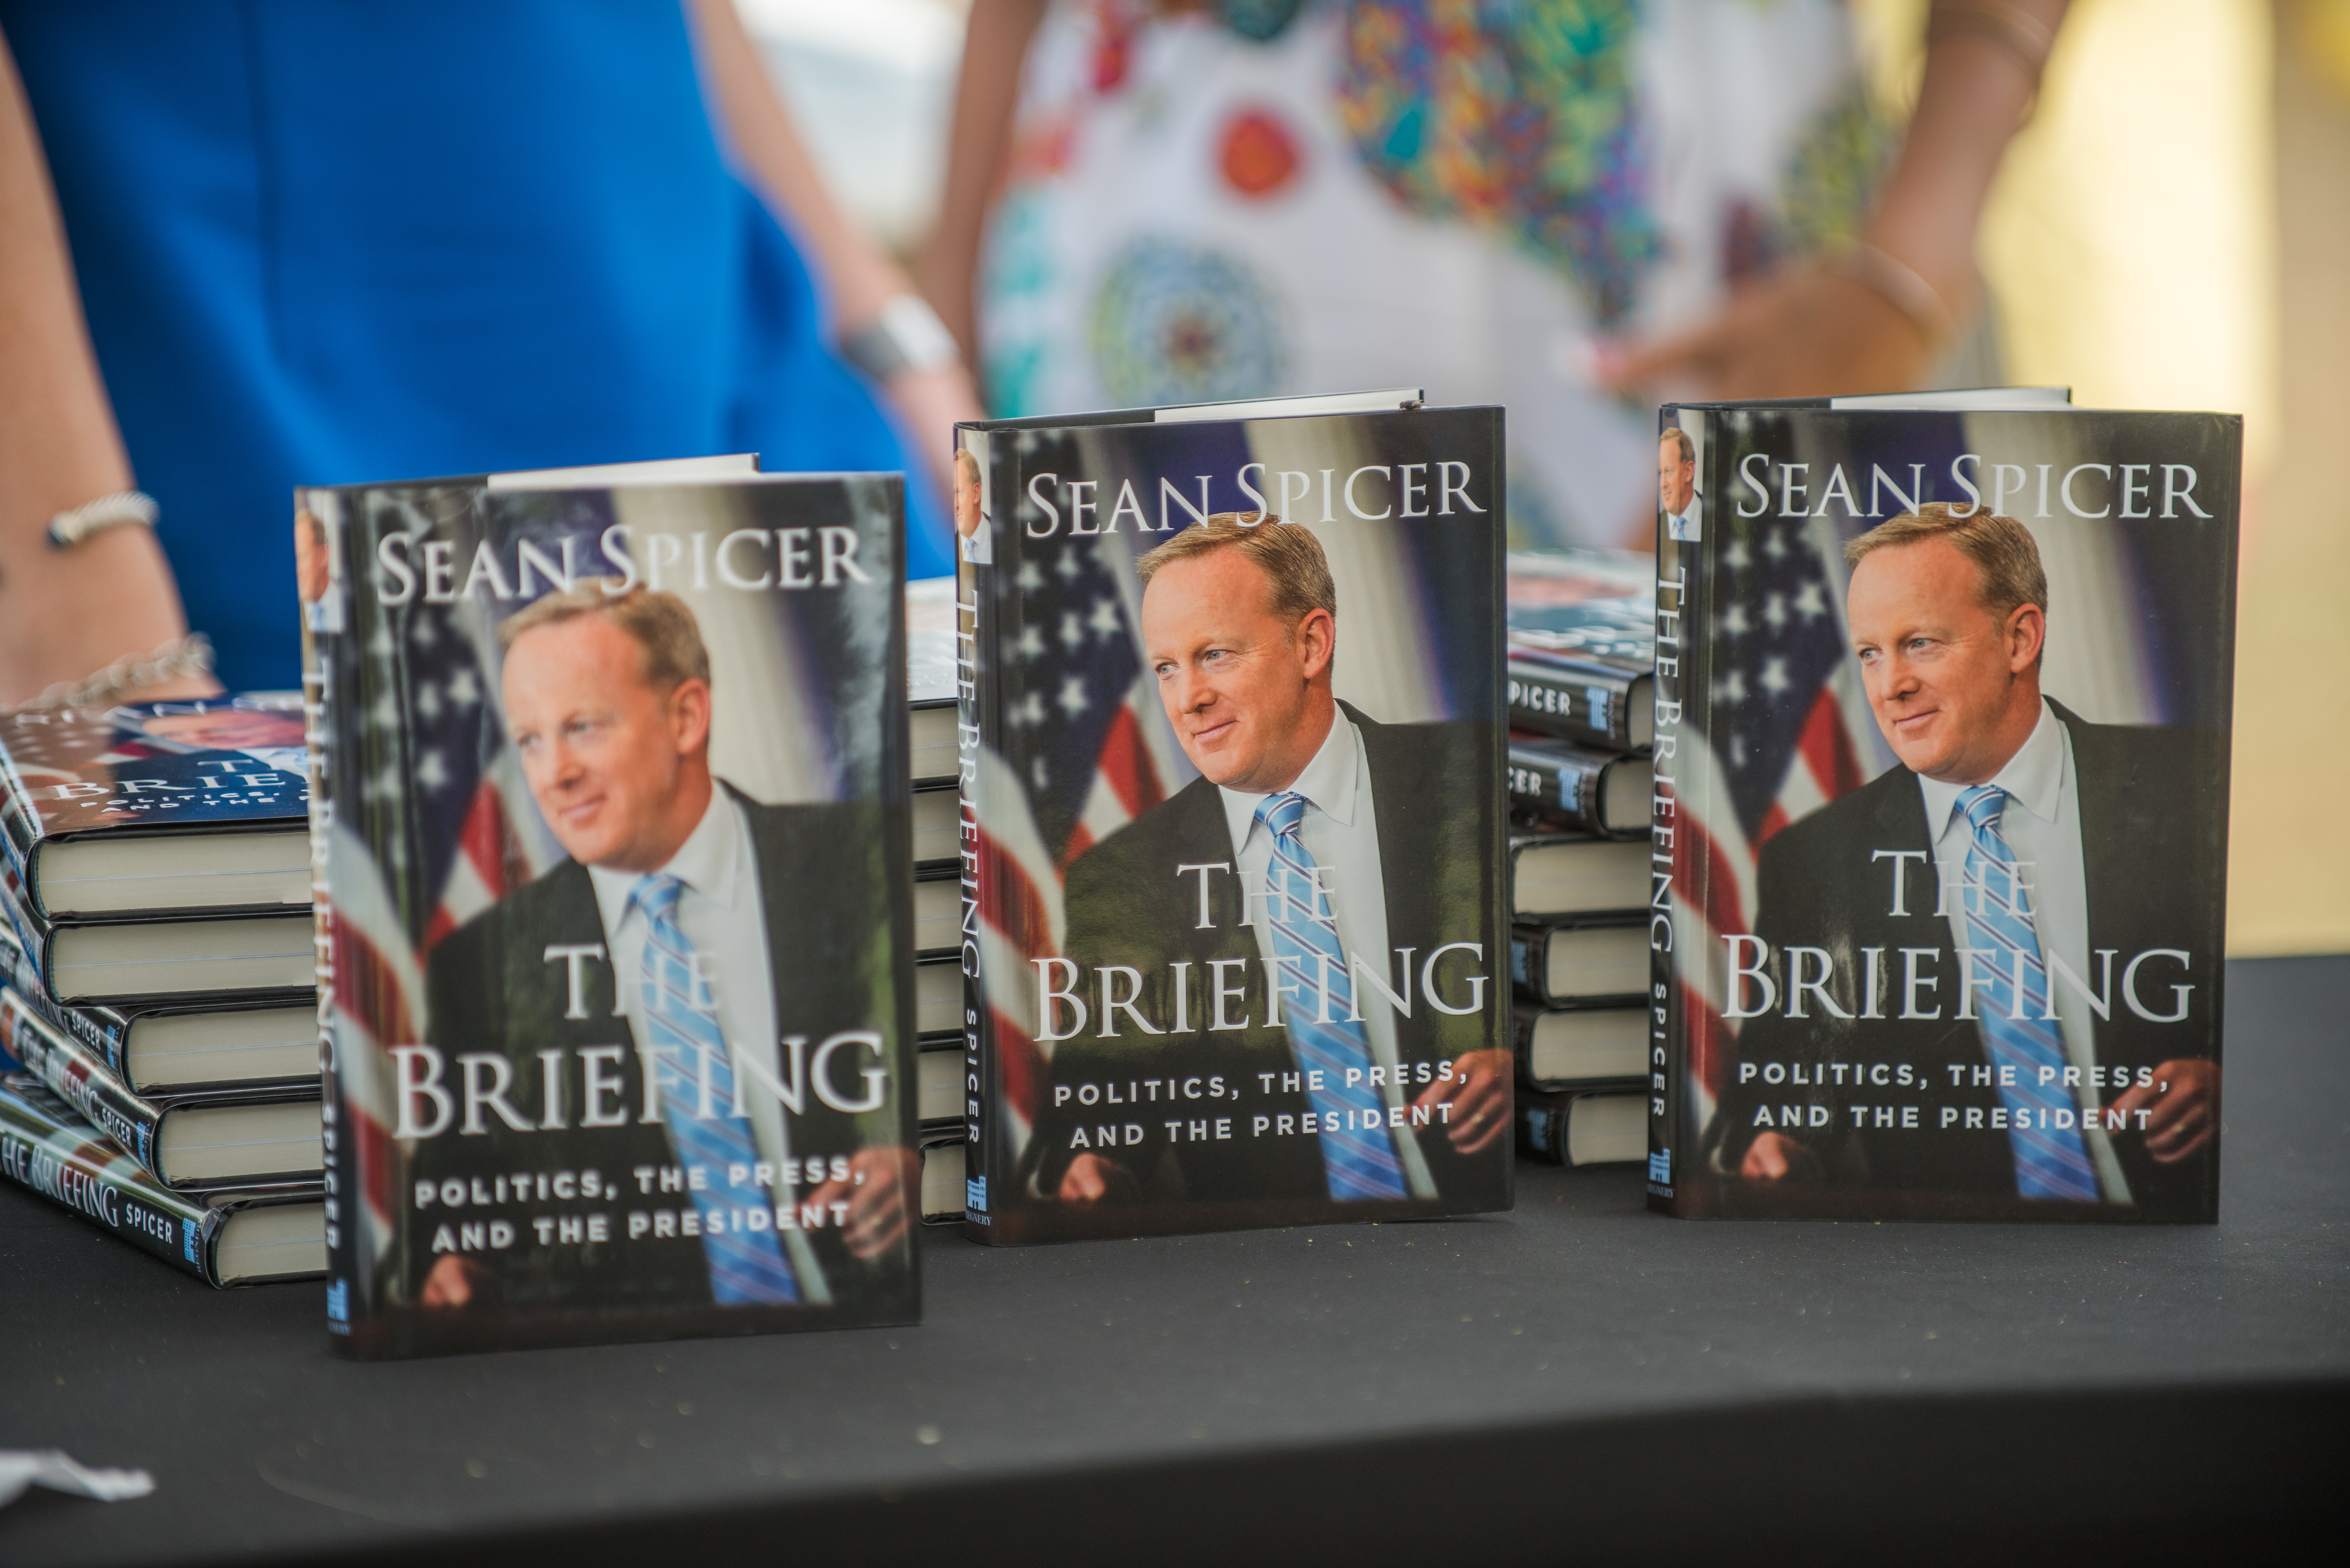 Sean Spicer Event